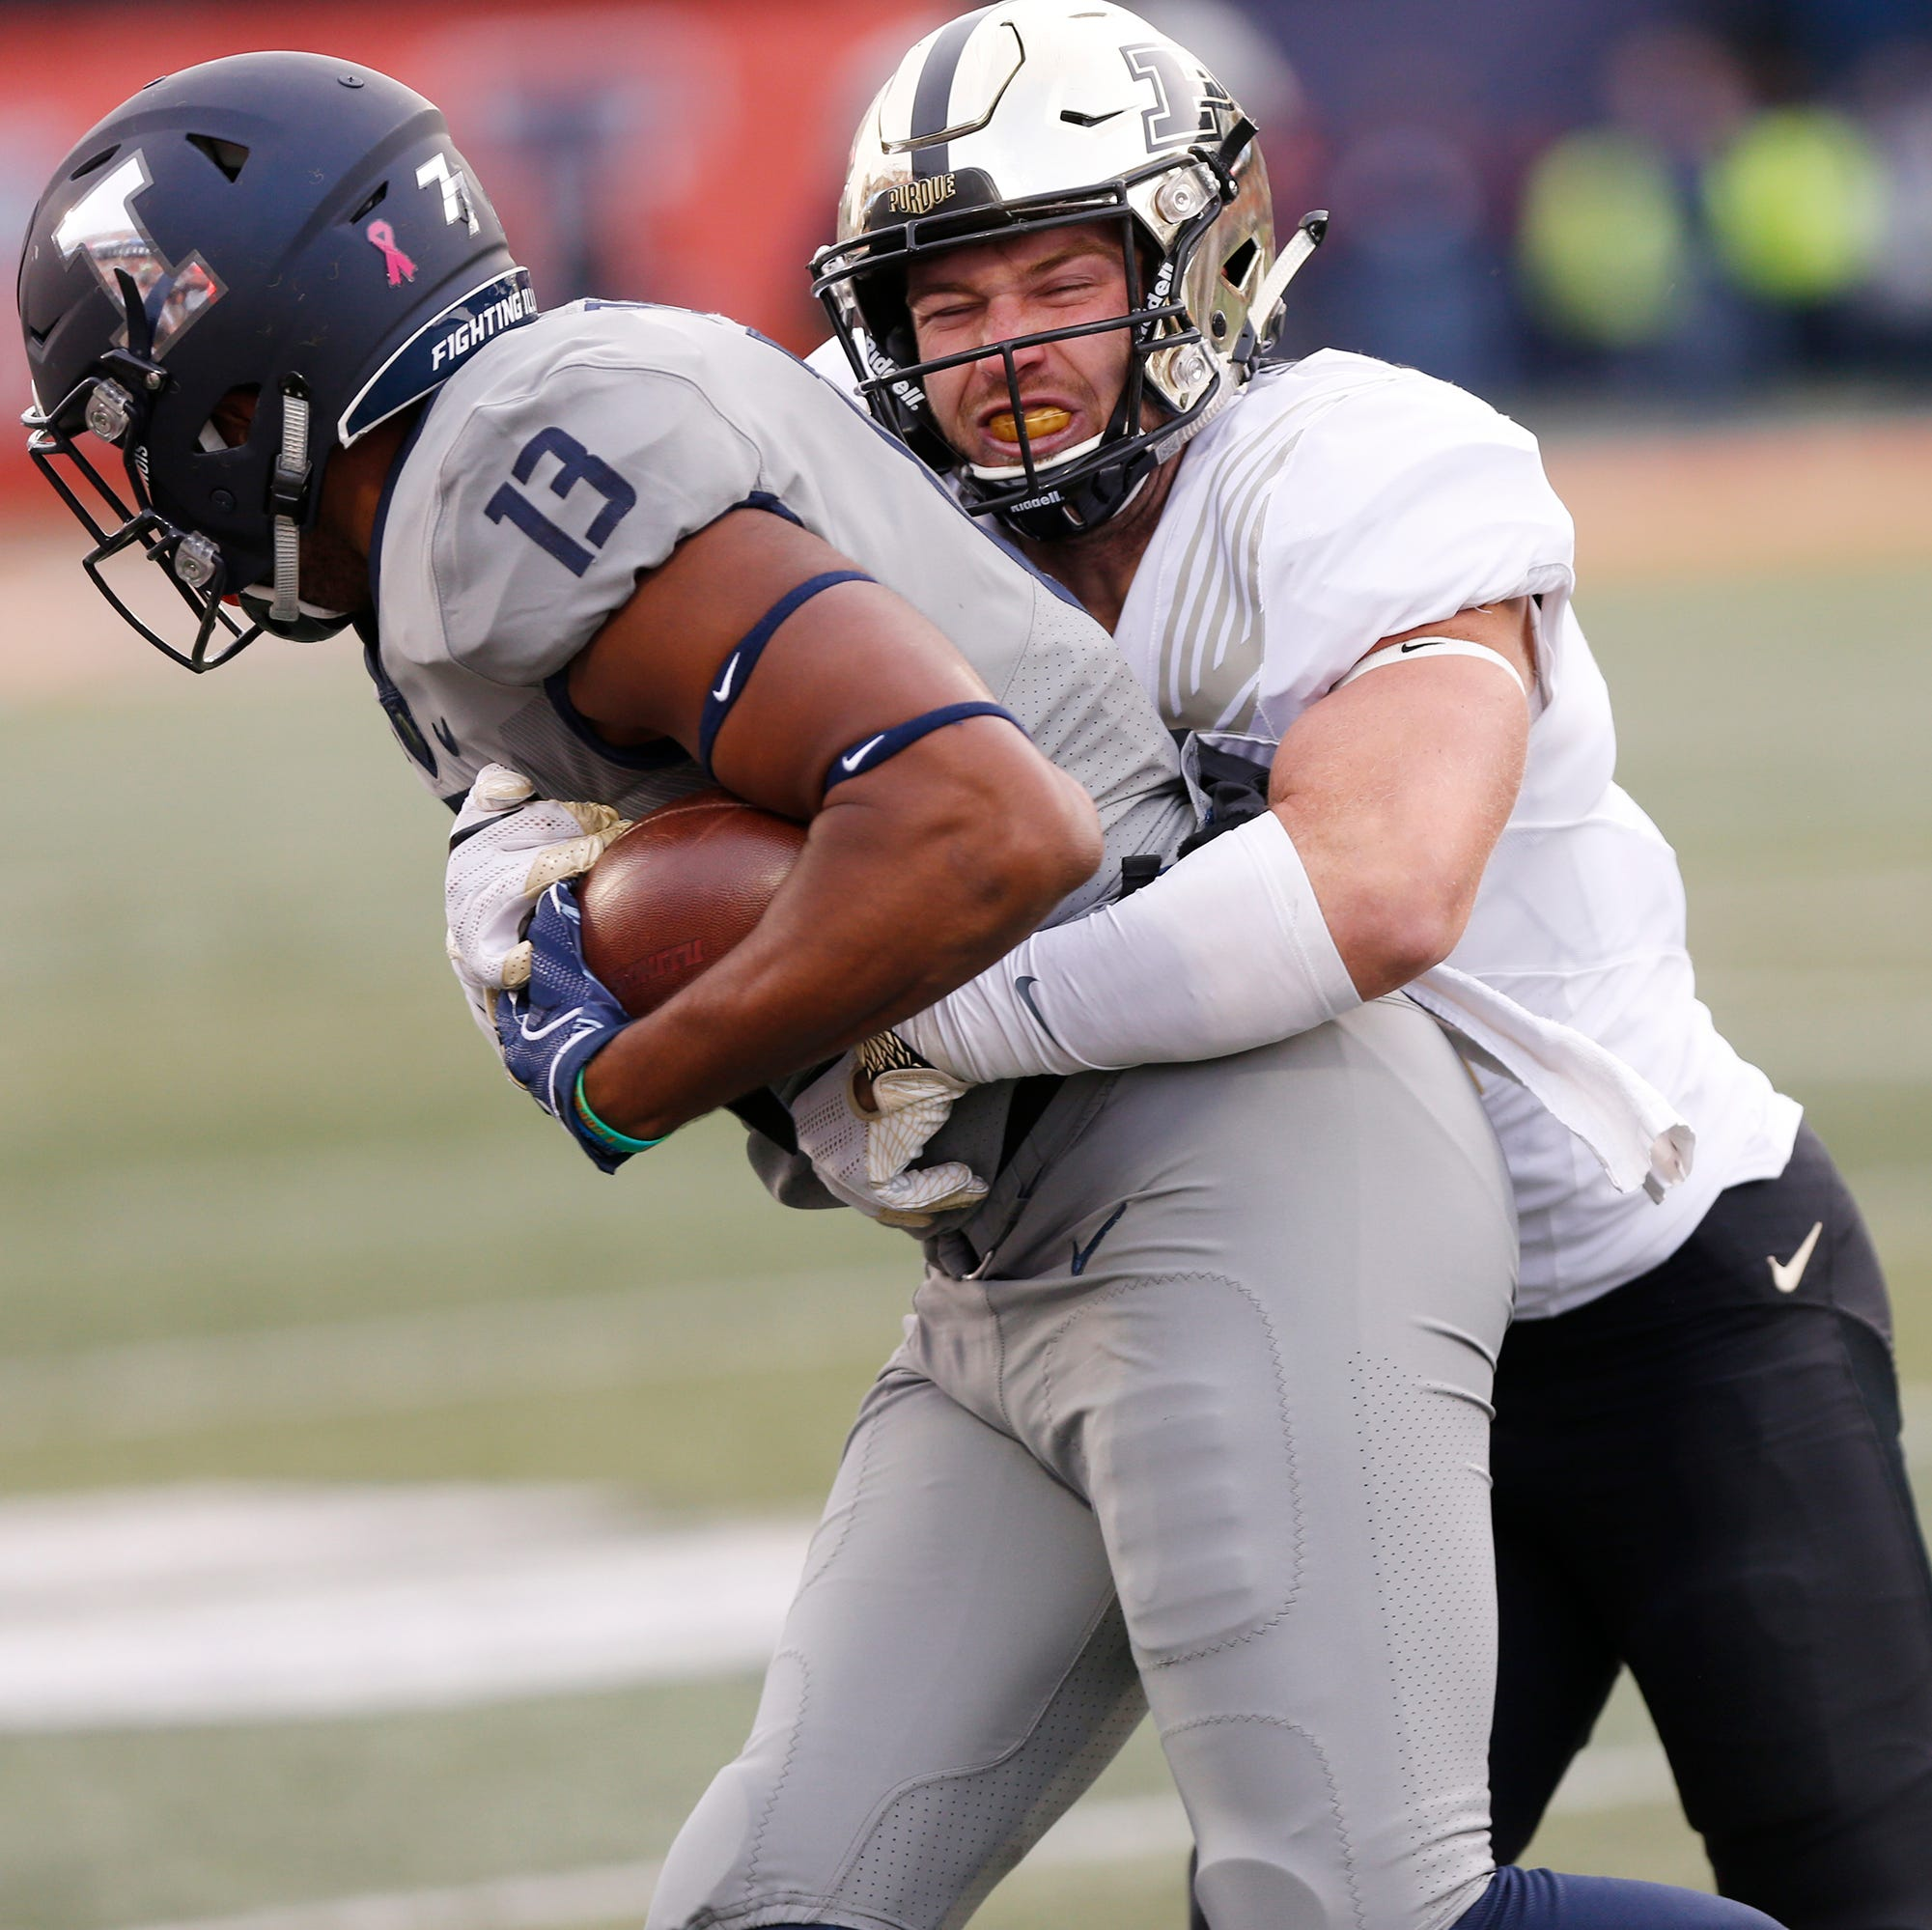 Purdue safety Jacob Thieneman determined to prove himself again